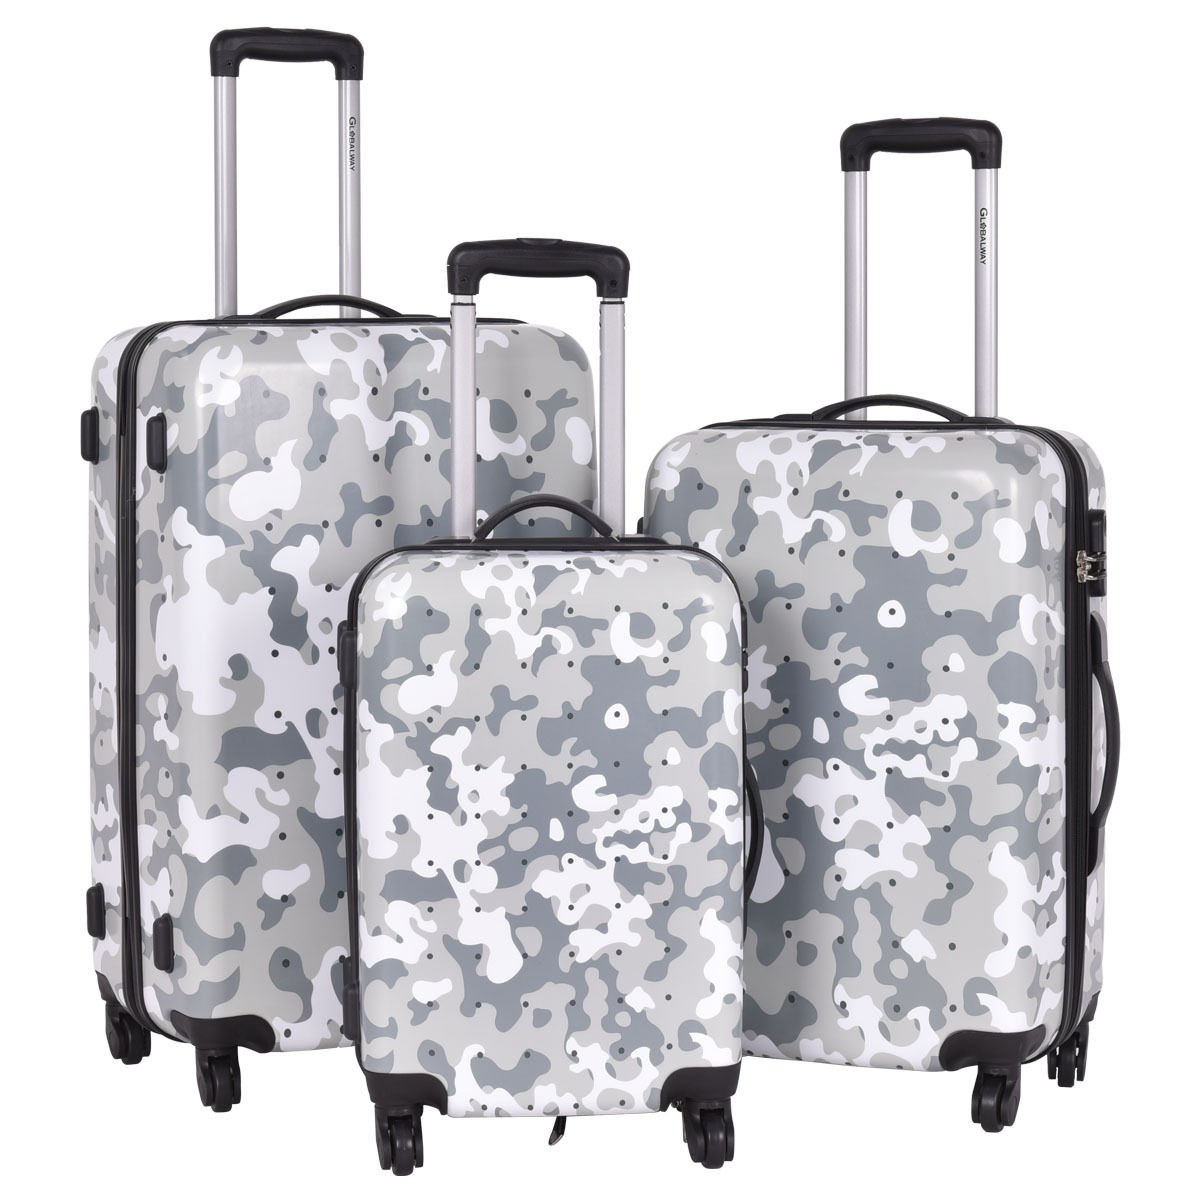 Travel Luggage Set 3 Pcs ABS+PC Trolley Suitcase With Code Lock